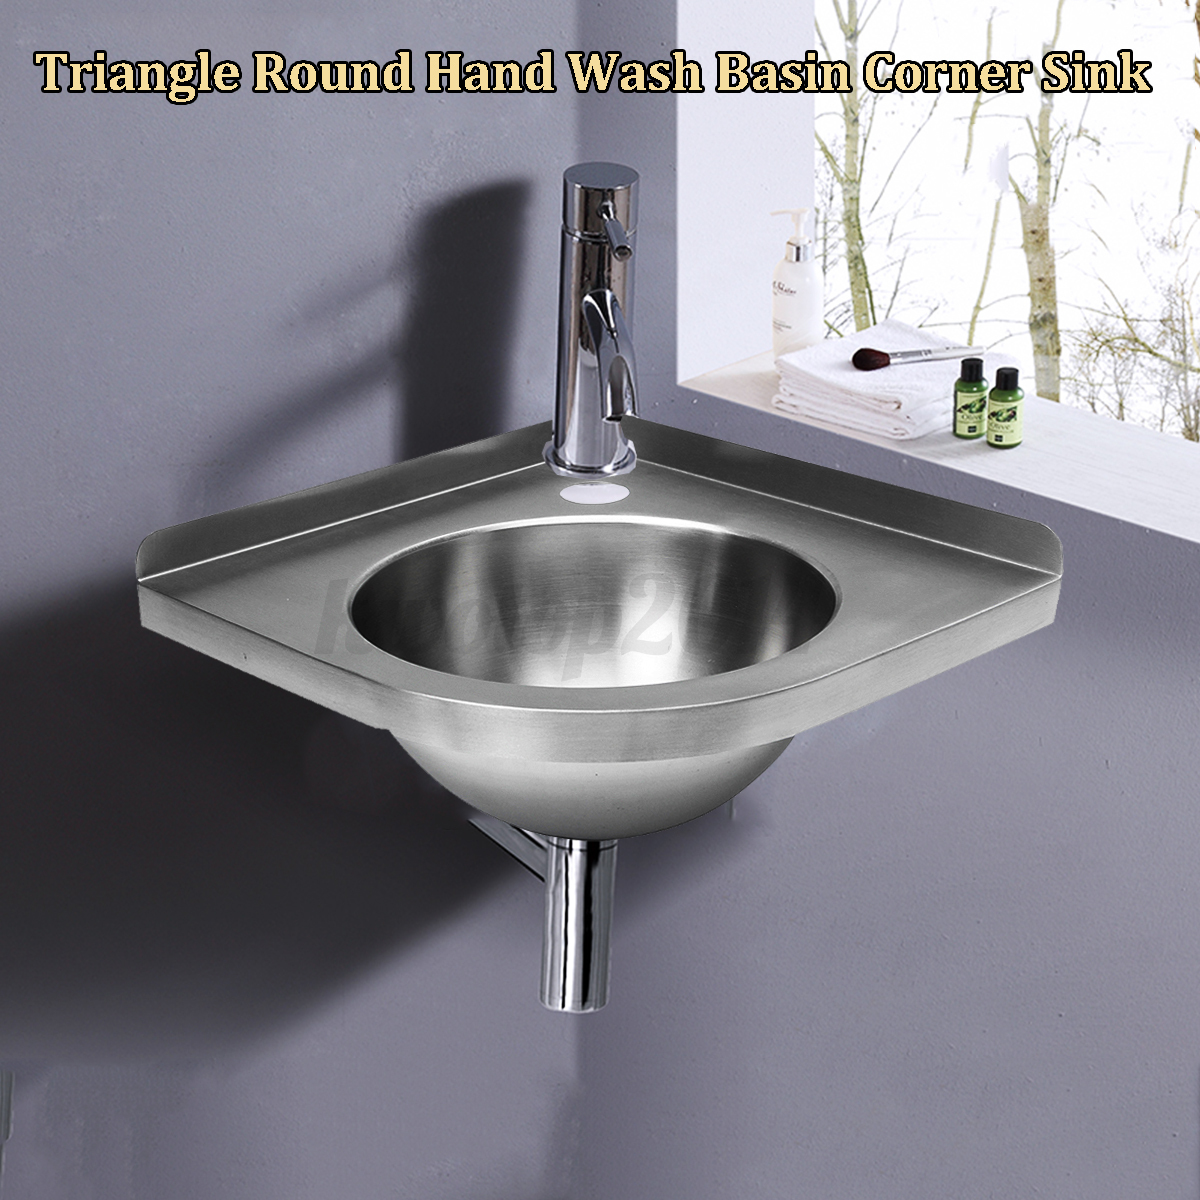 Getting Off On The Corner Of The Sink  Camlicknet  XVideos